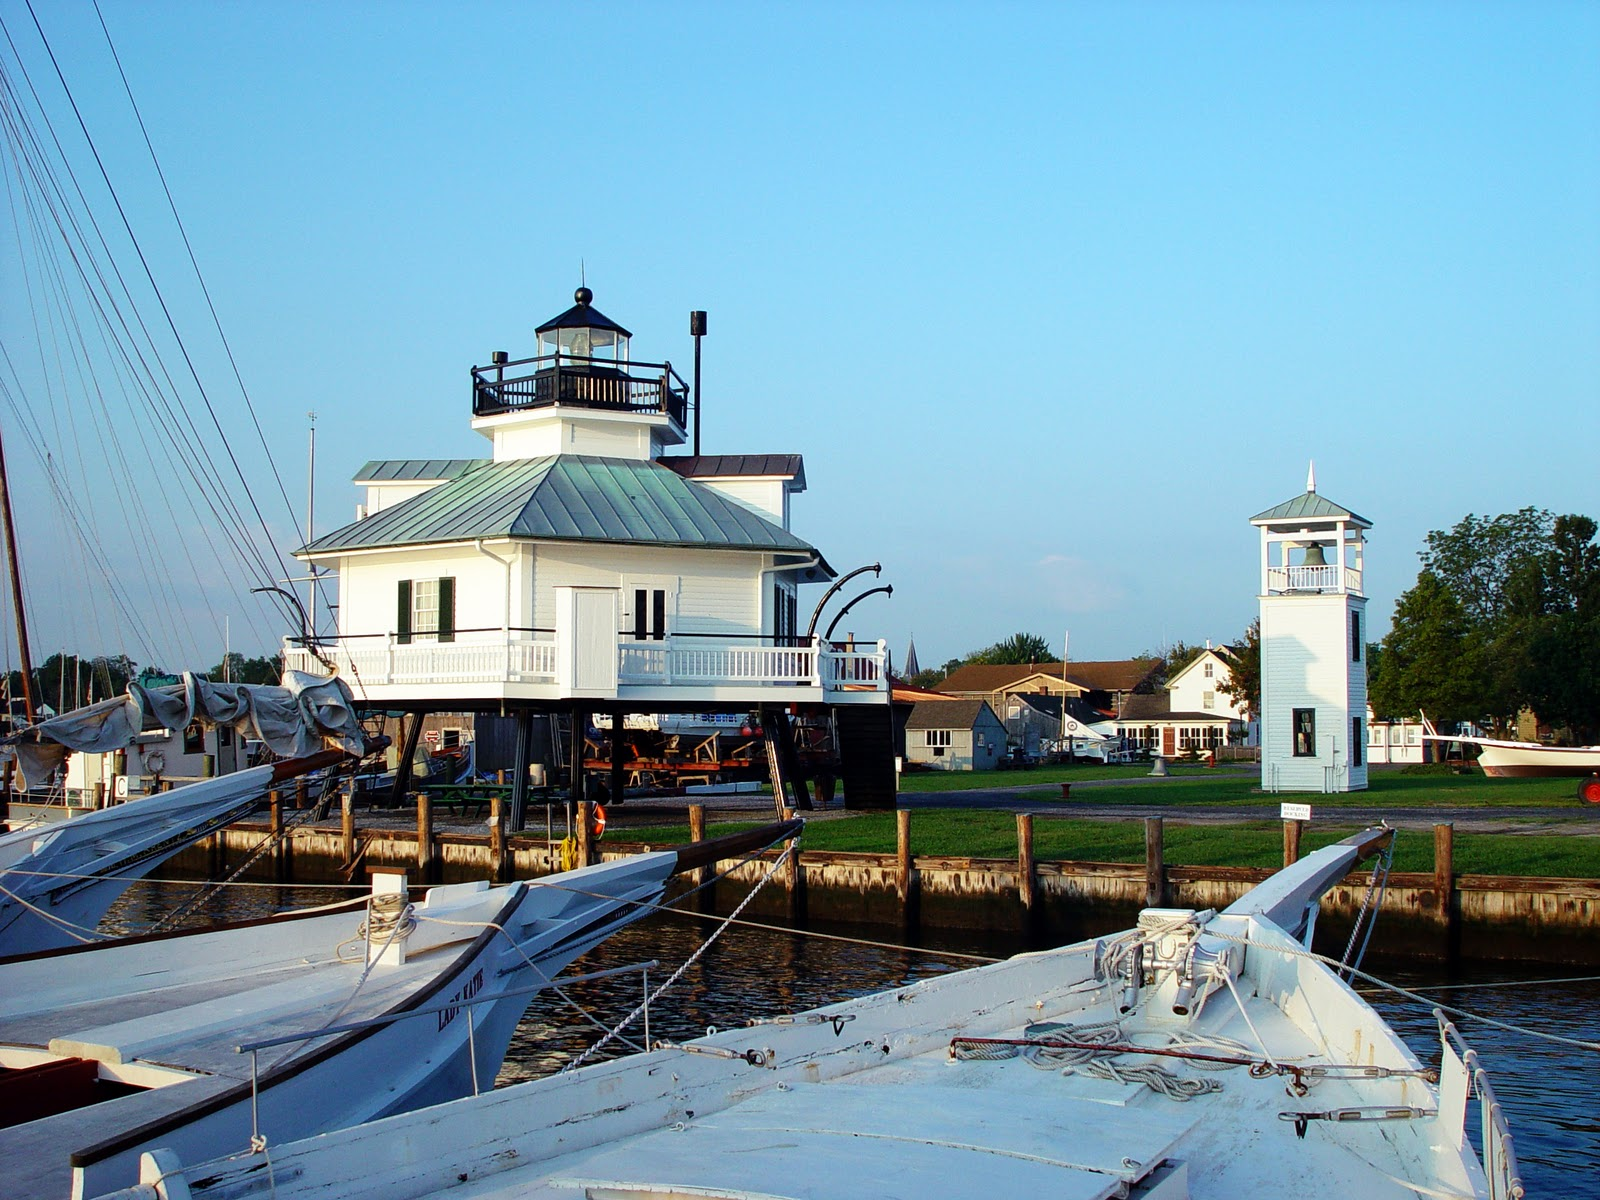 Chesapeake Bay Maritime Museum St. Michaels, Maryland